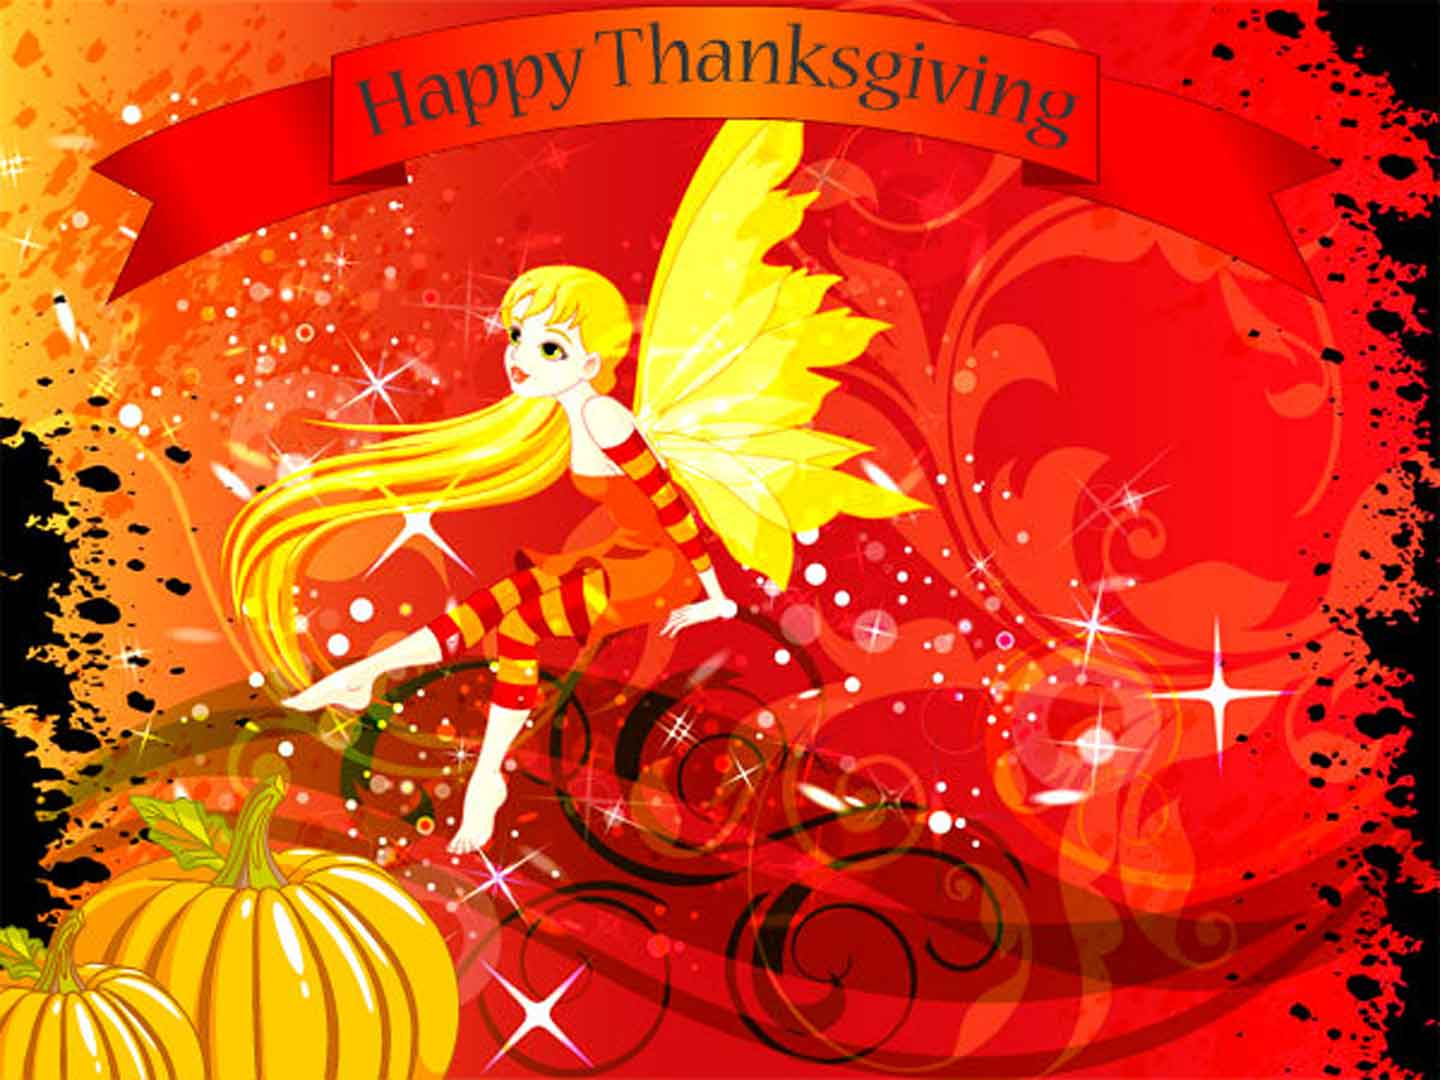 happy thanksgiving day greetings modern hd wallpaper